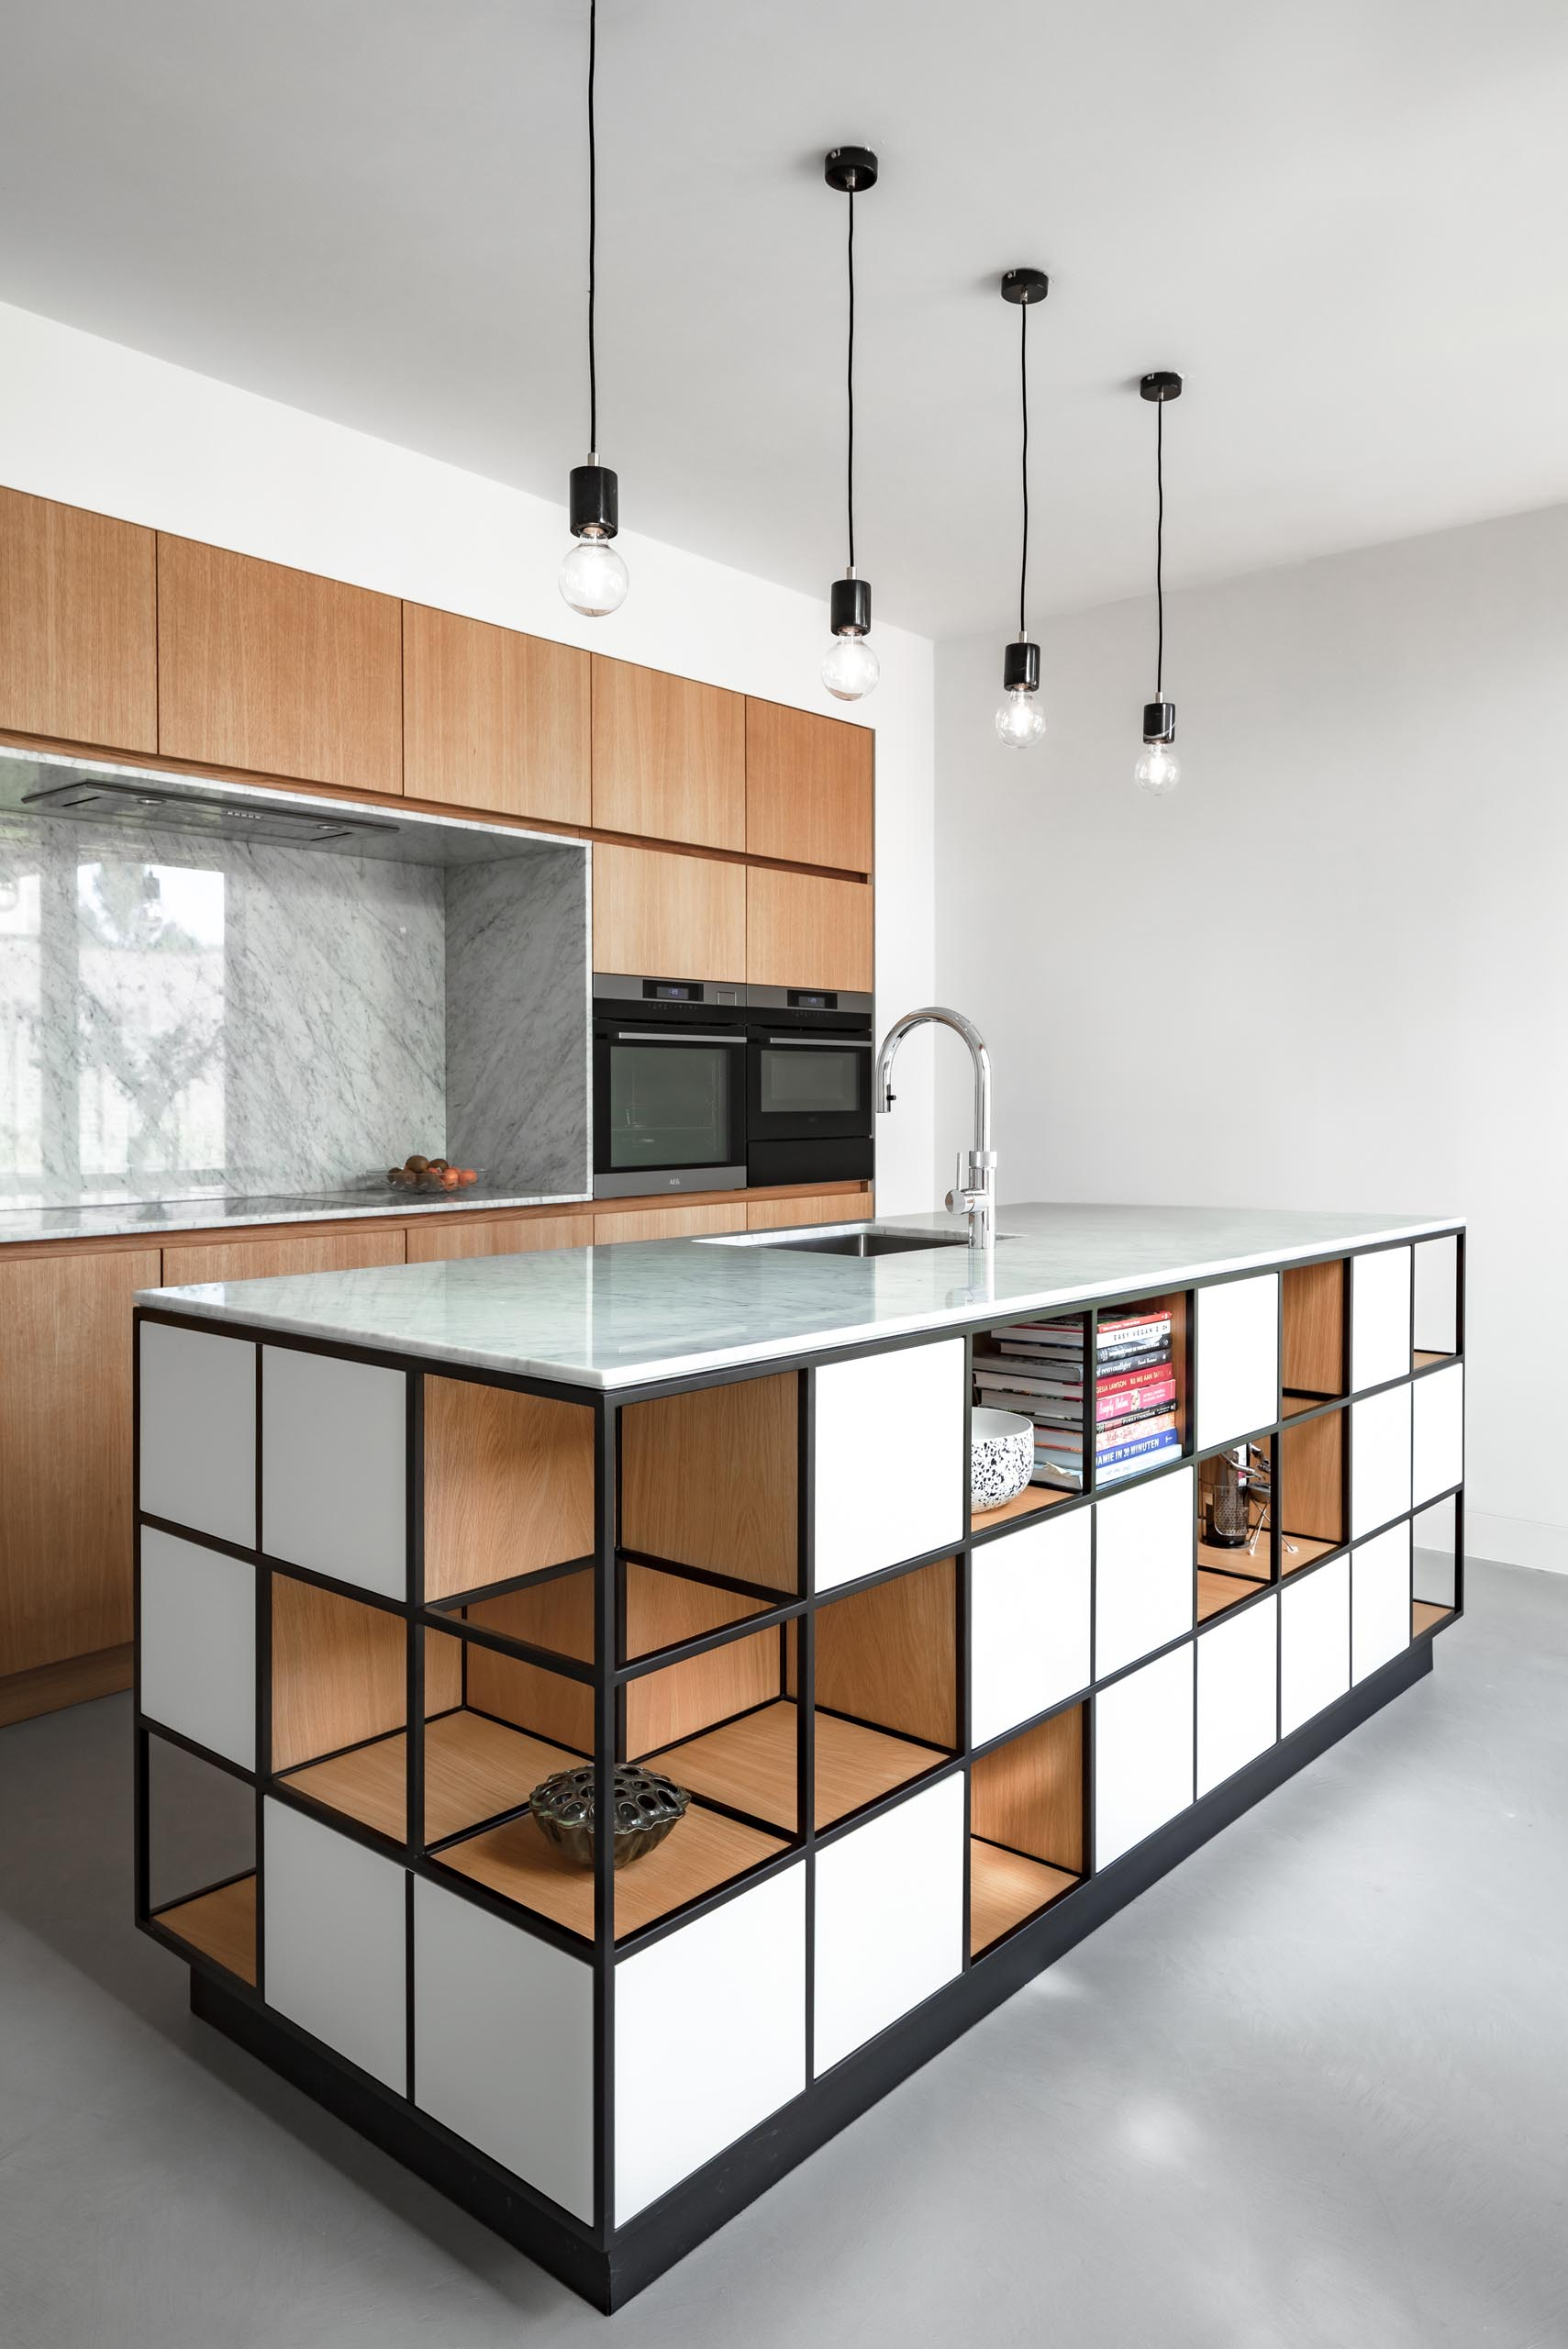 In this modern kitchen, hardware-free wood cabinets line the wall, and an island includes a cube like design with shelving.